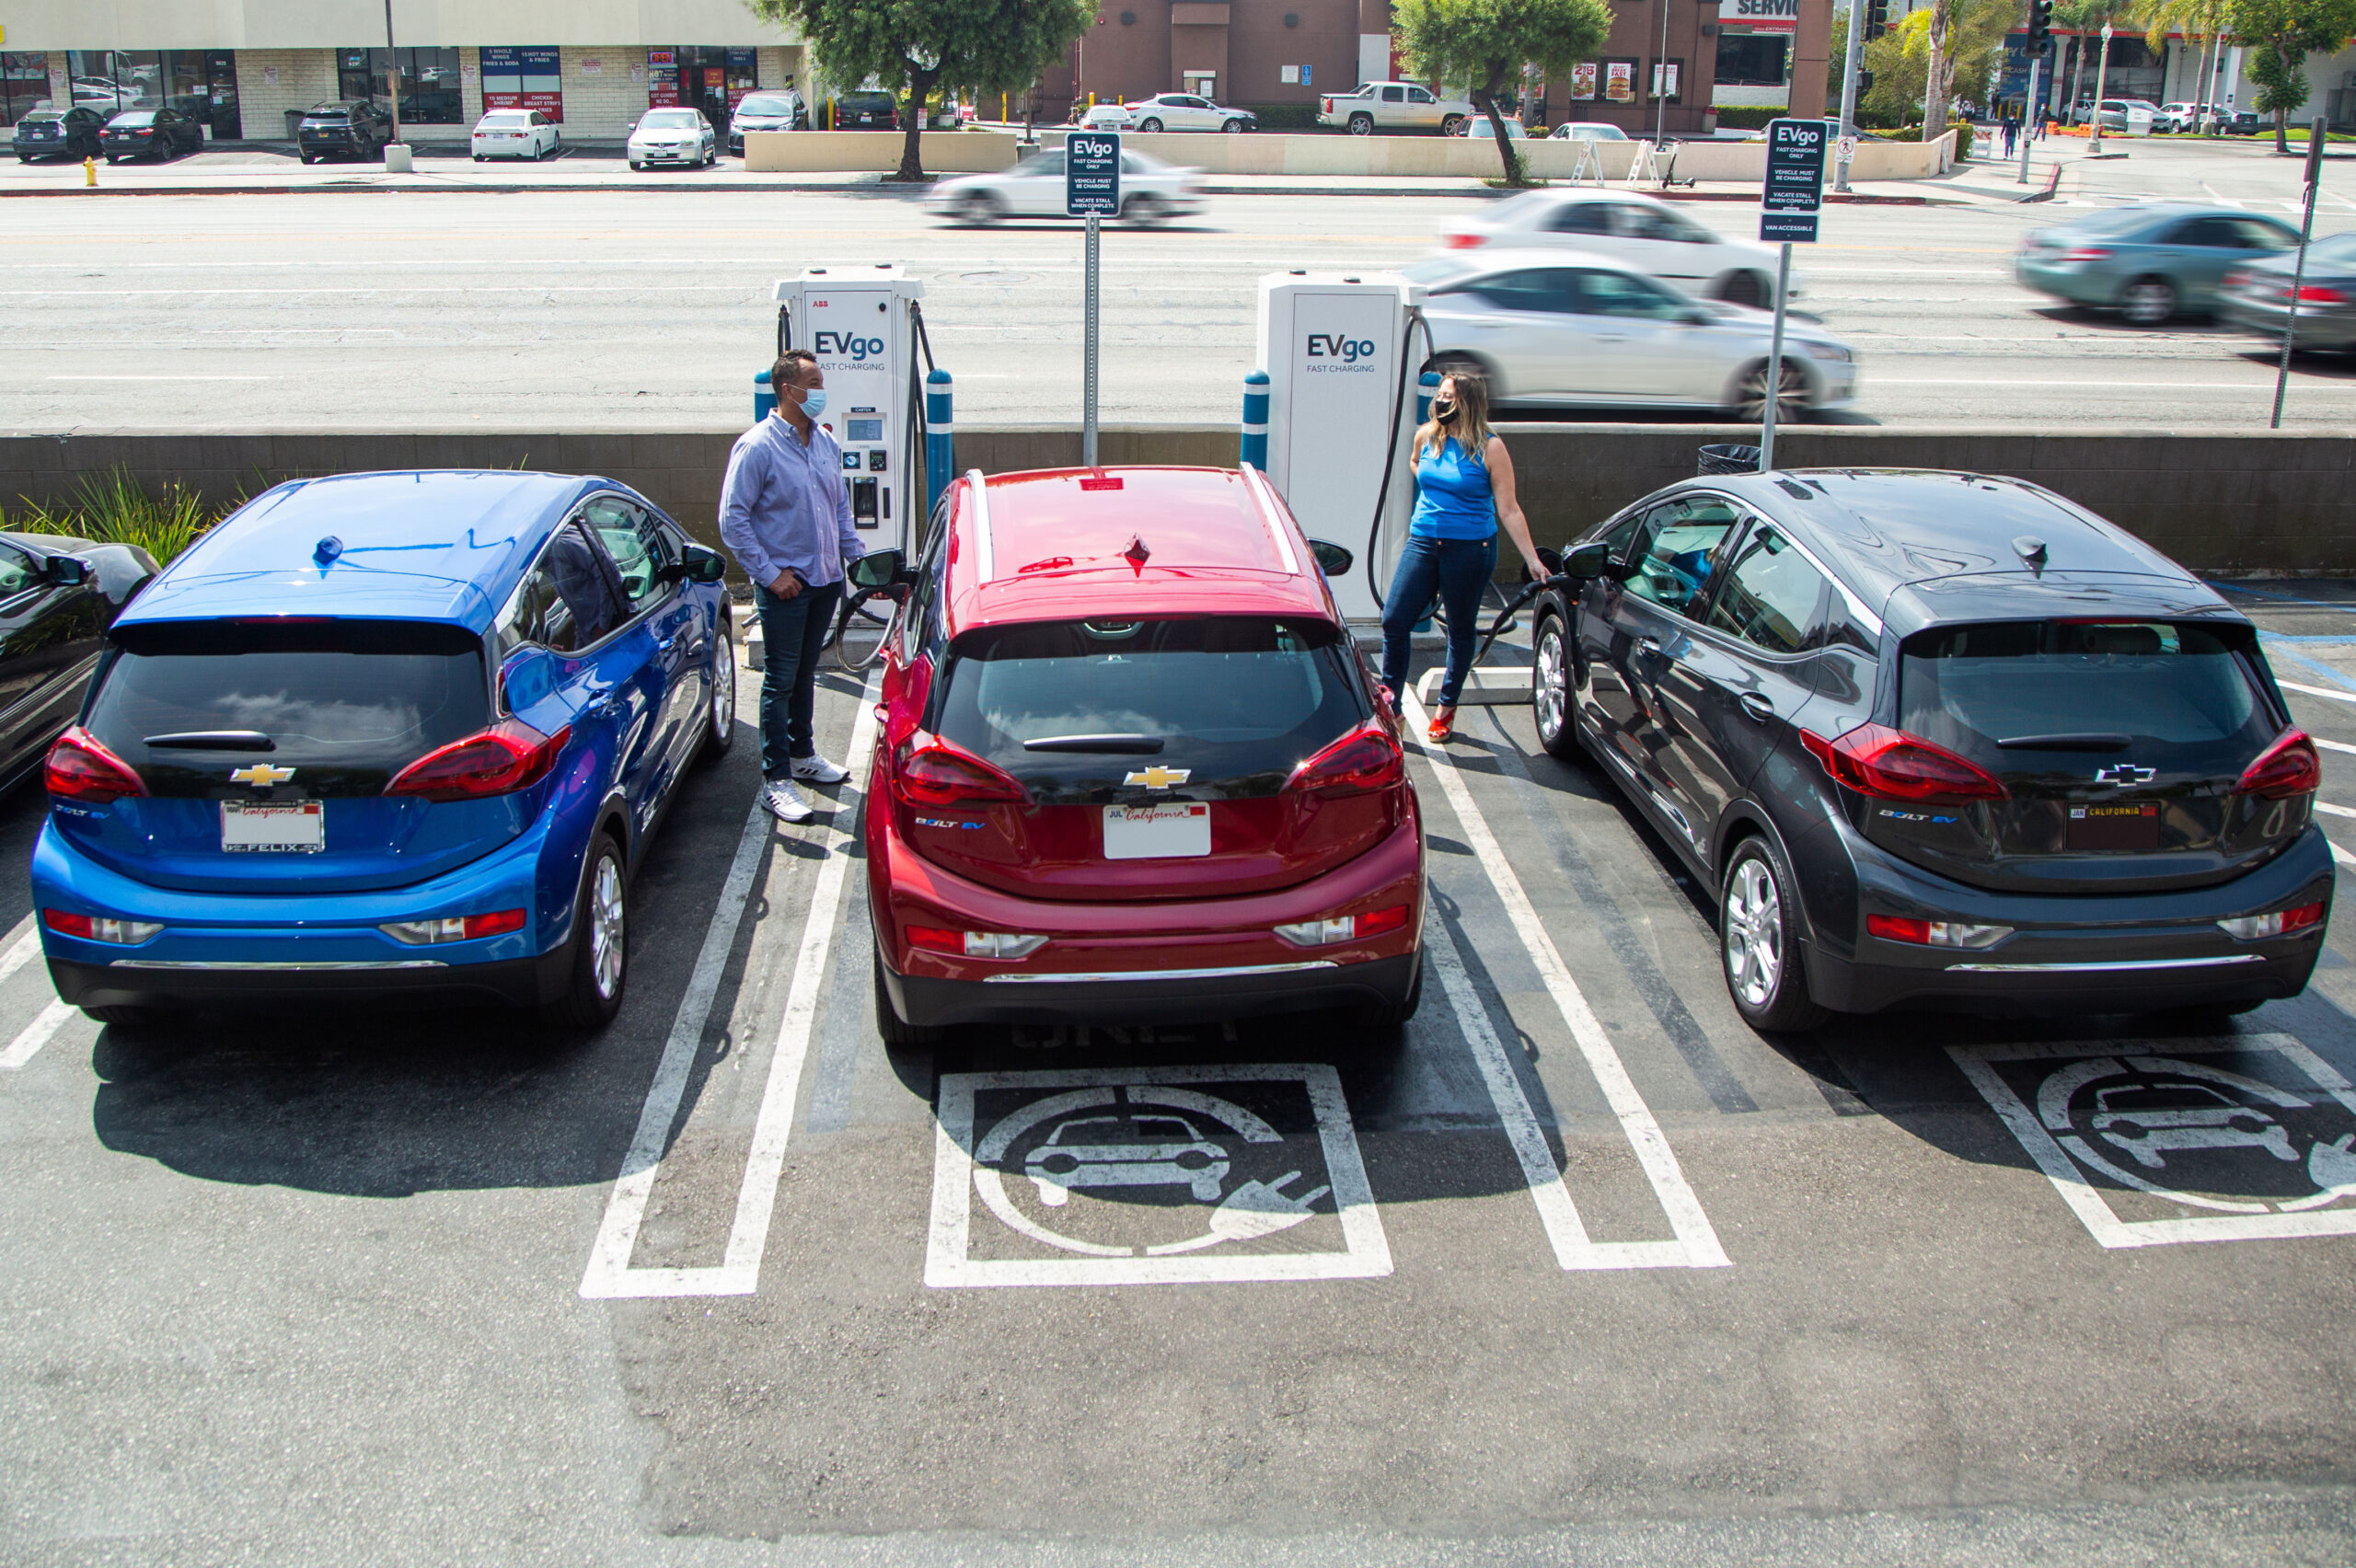 GM and EVgo Partner to Add 2,700 New Fast Chargers Over the Next Five Years